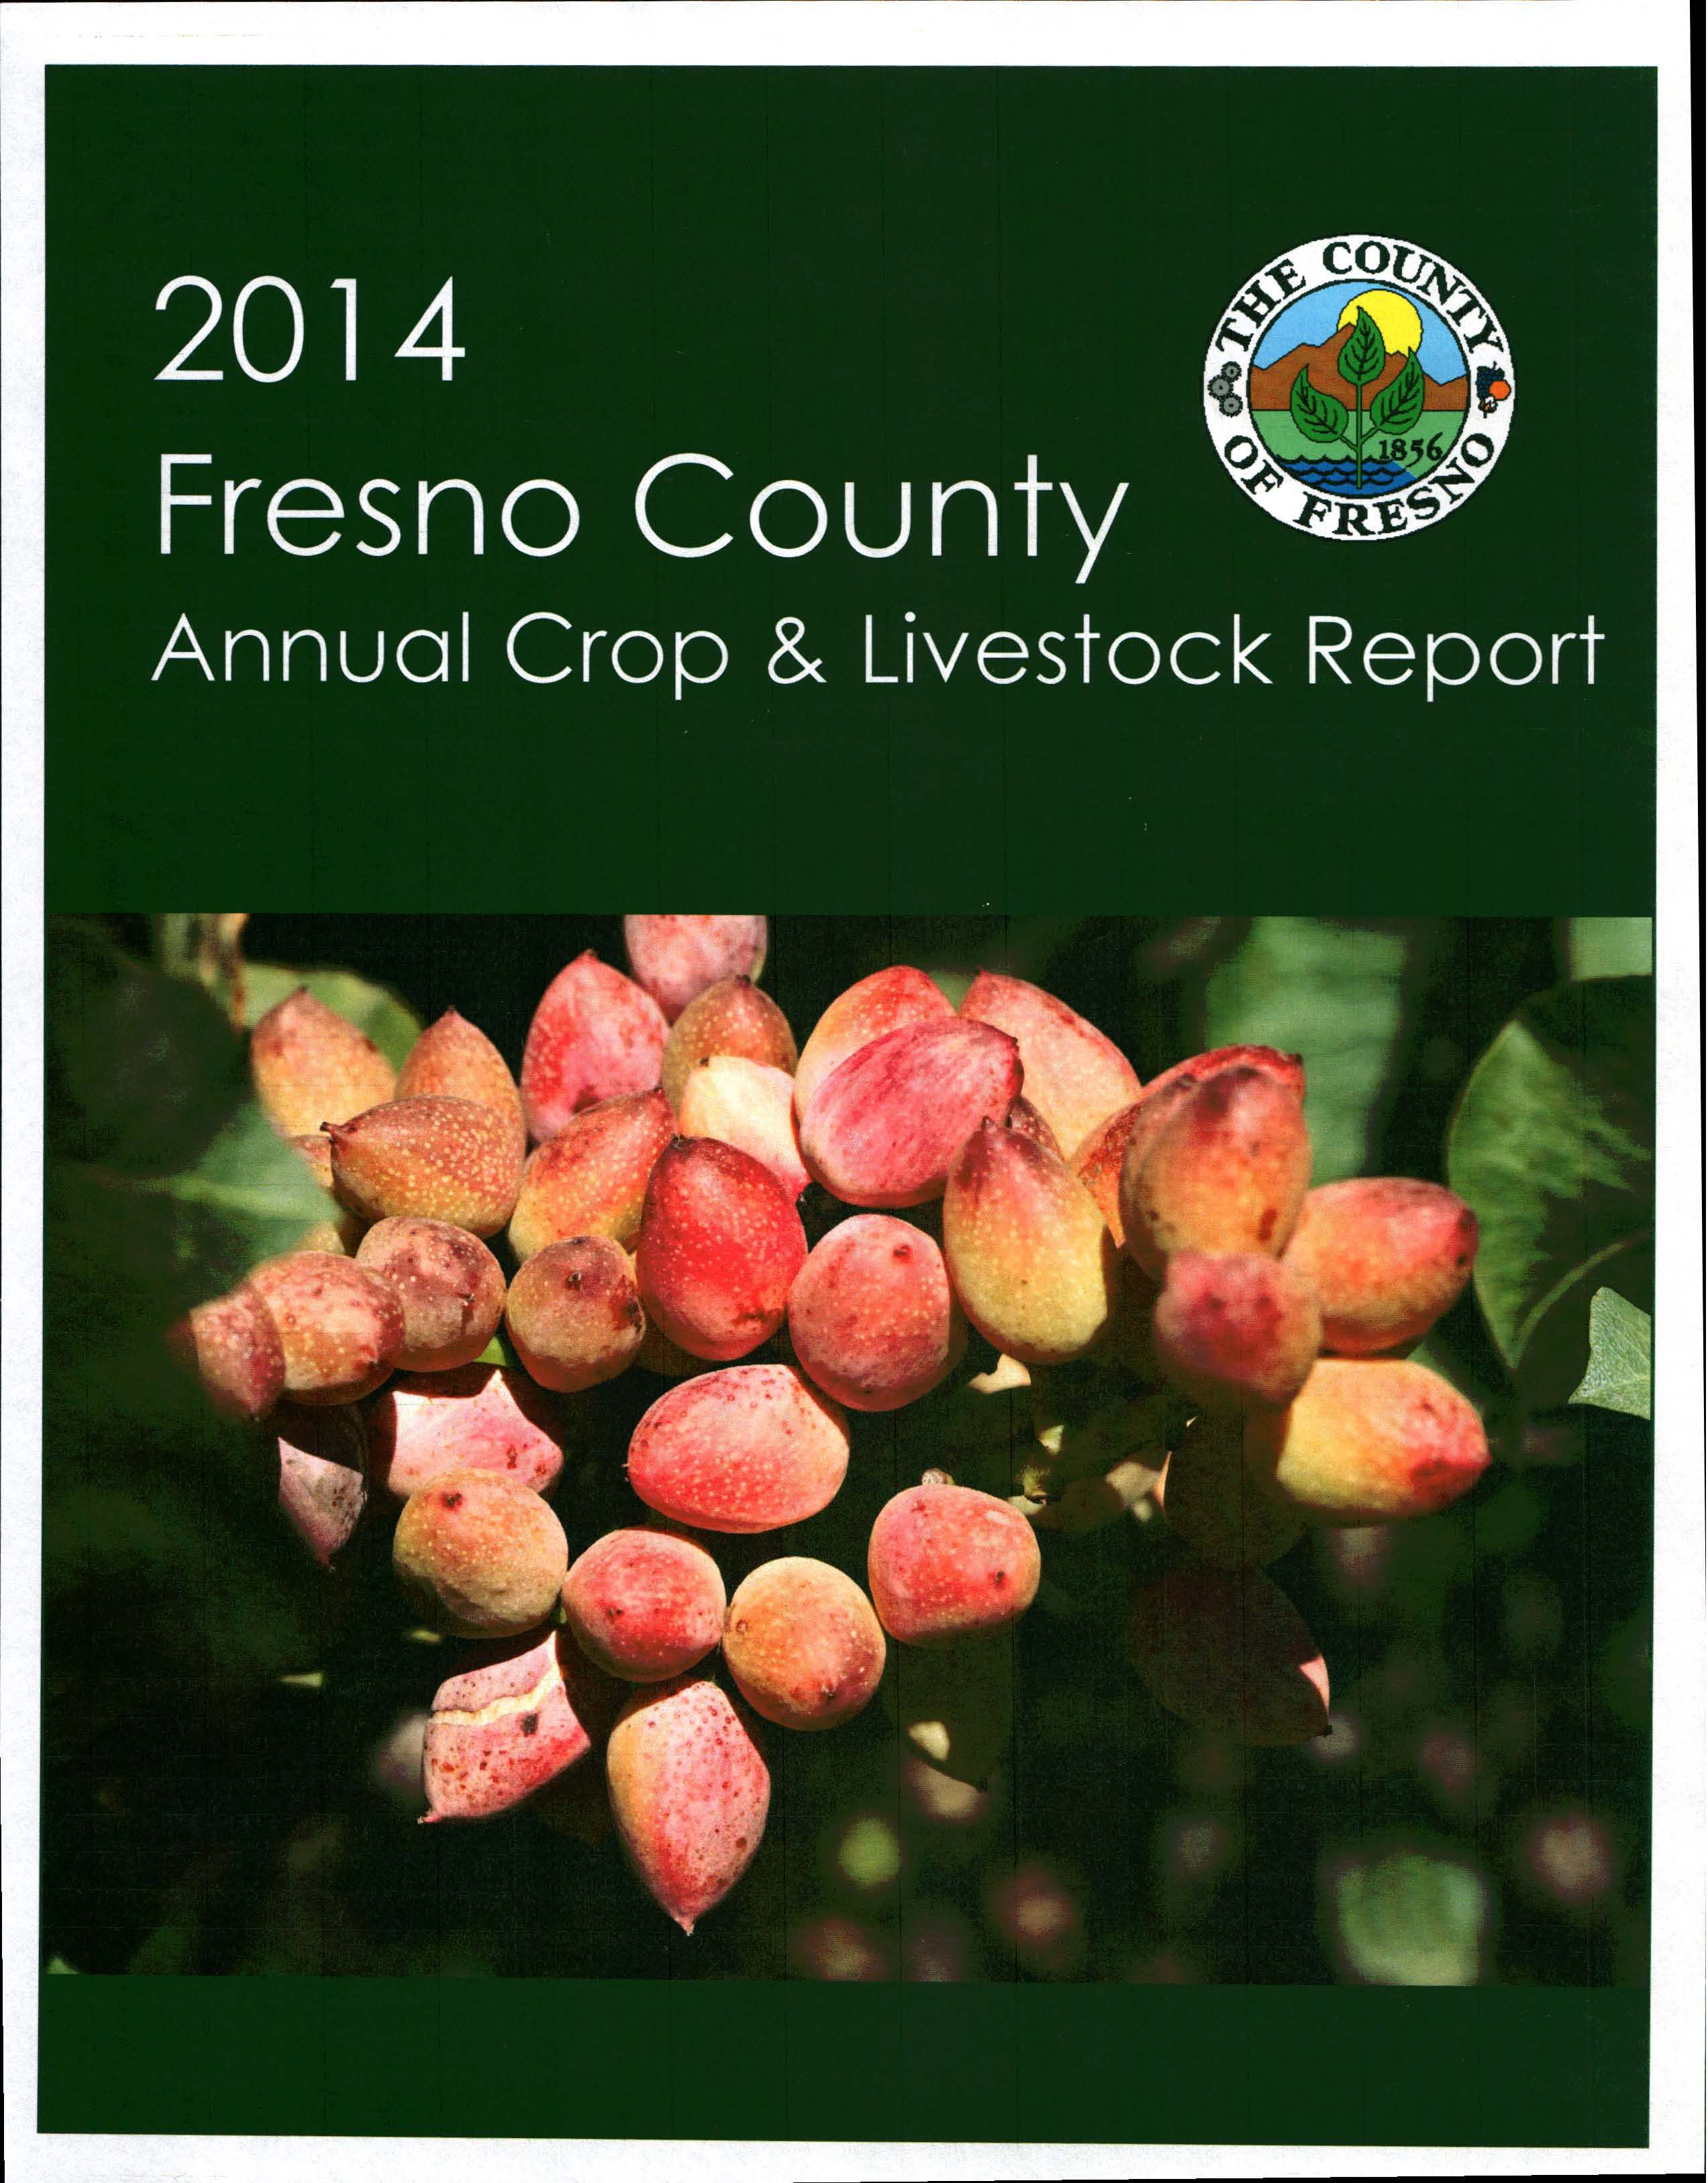 2014-Fresno-County-Crop-Report-Cover